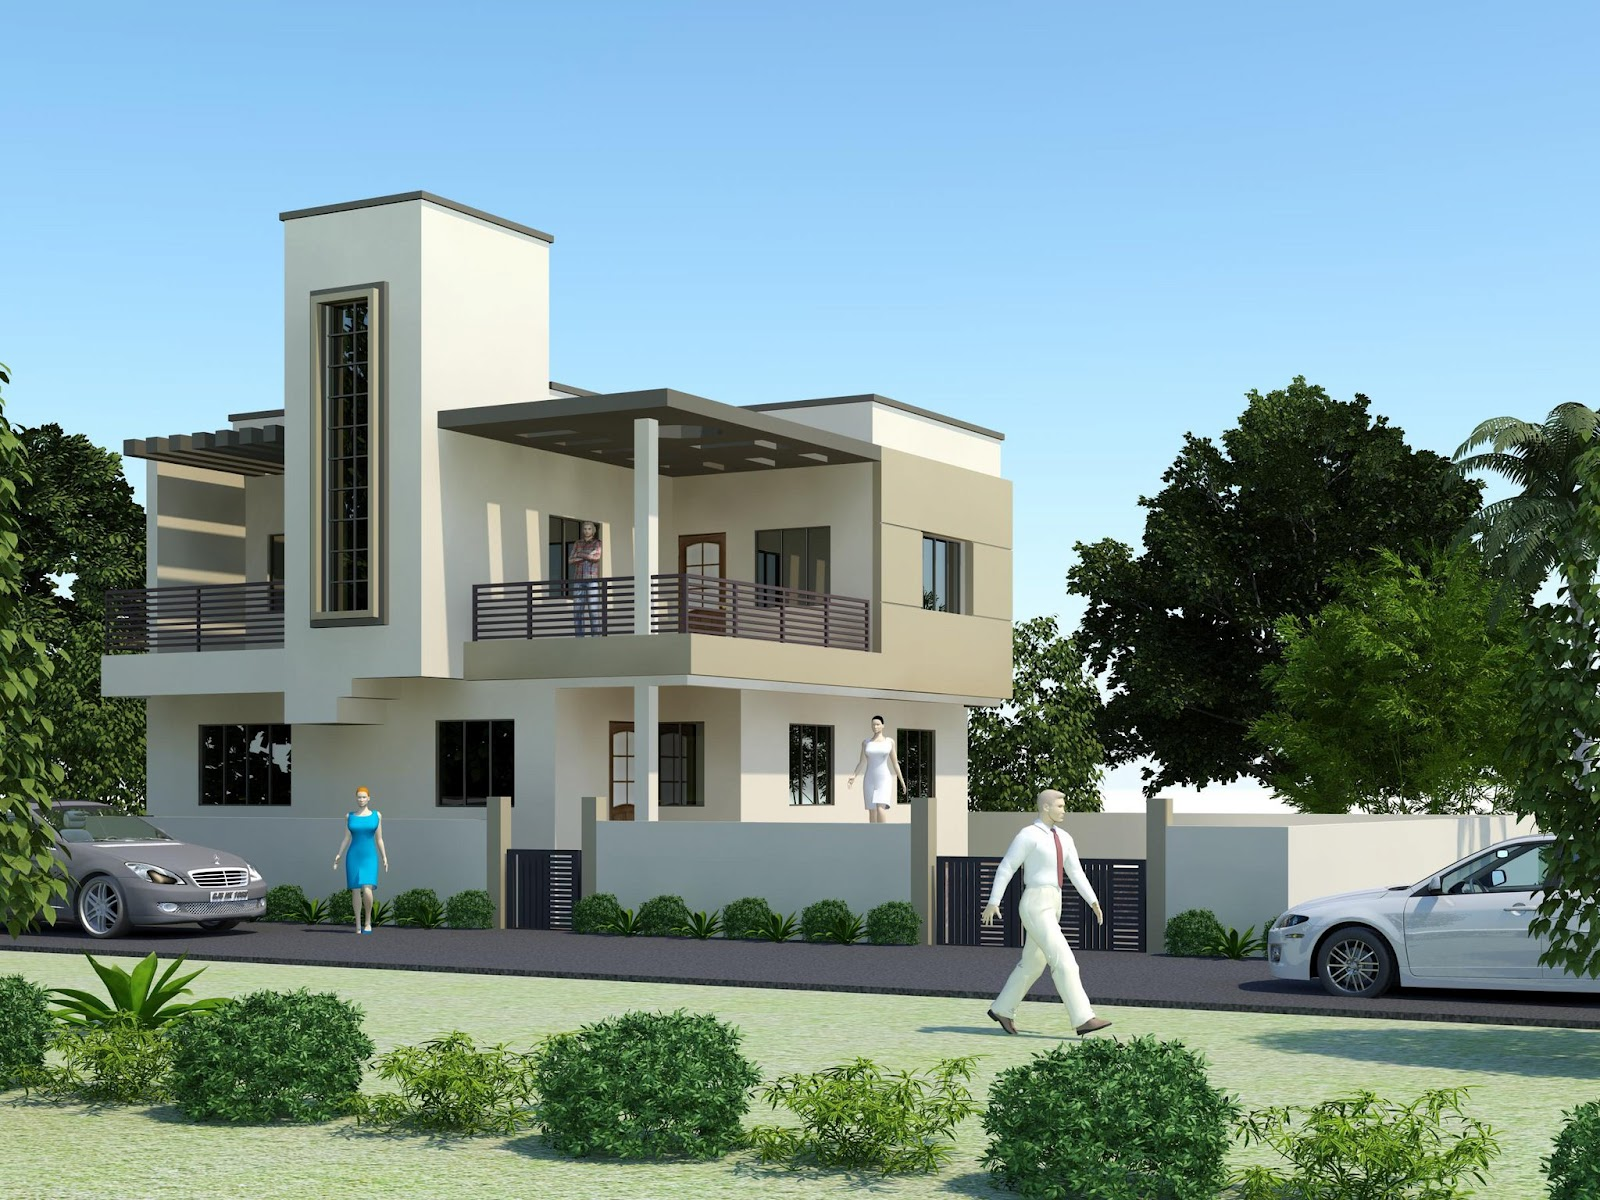 New home designs latest modern homes exterior designs for New home designs pictures in pakistan